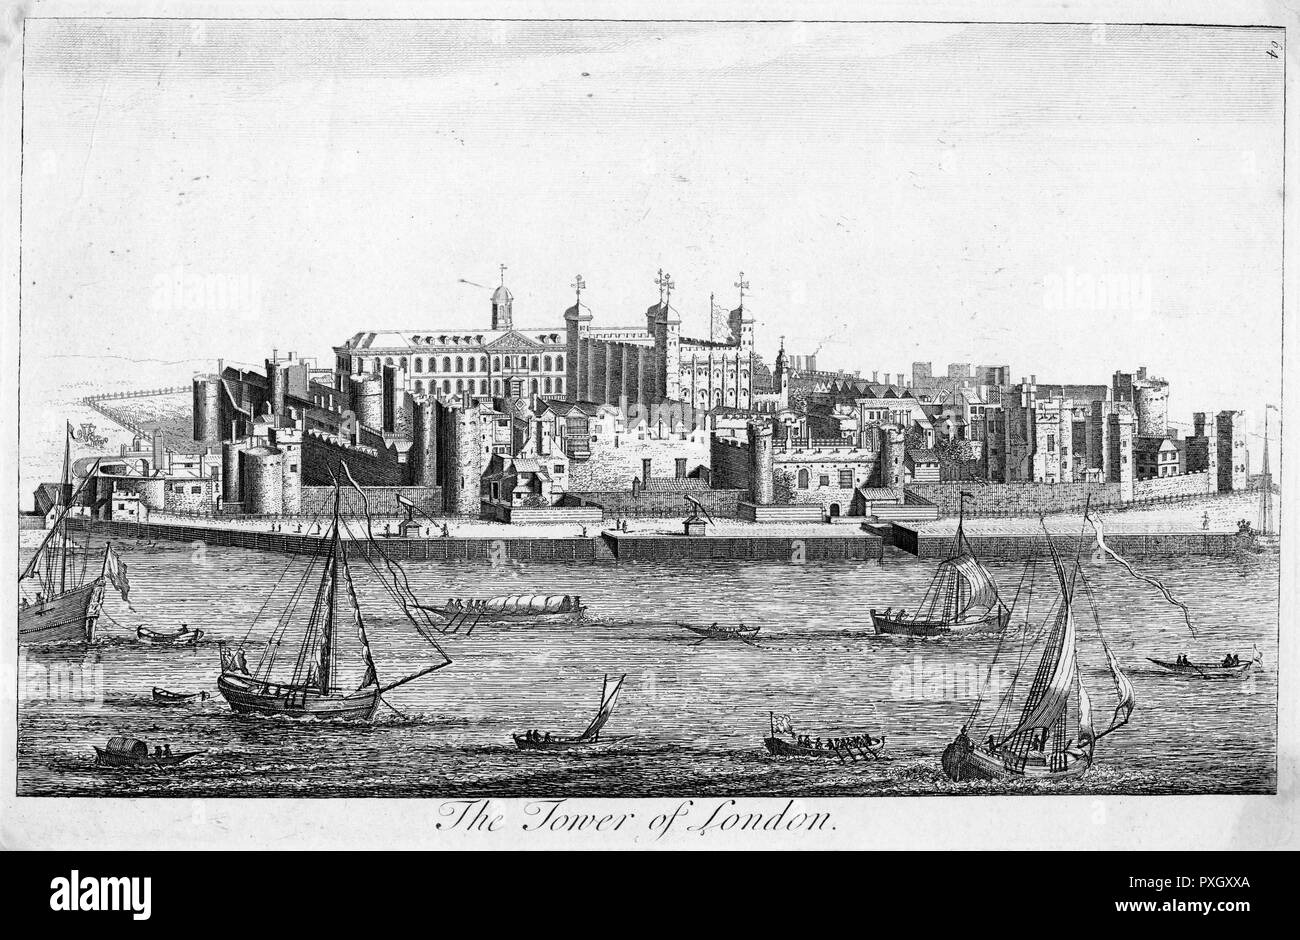 The Tower of London, early 18th century     Date: Early 18th century - Stock Image